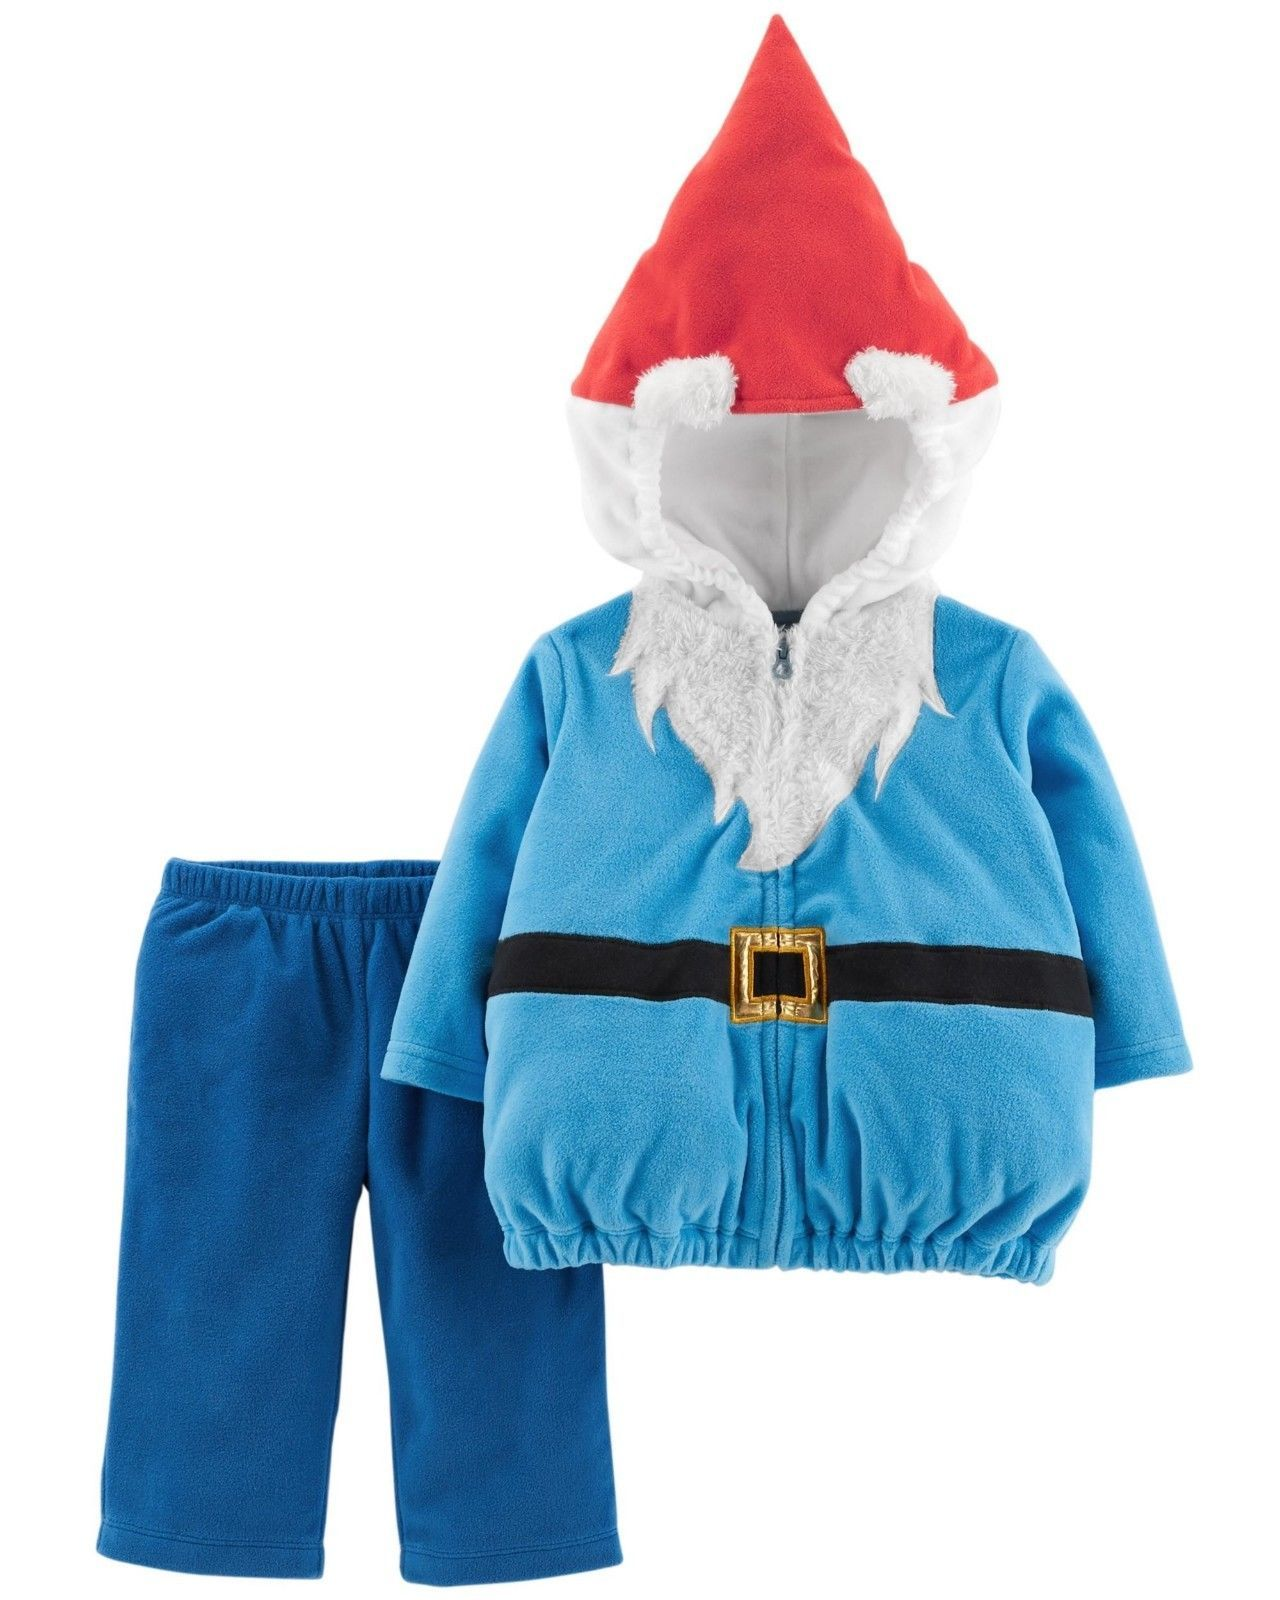 NEW NWT Carters Gnome Halloween Costume Boy or Girl 12 or 18 Months